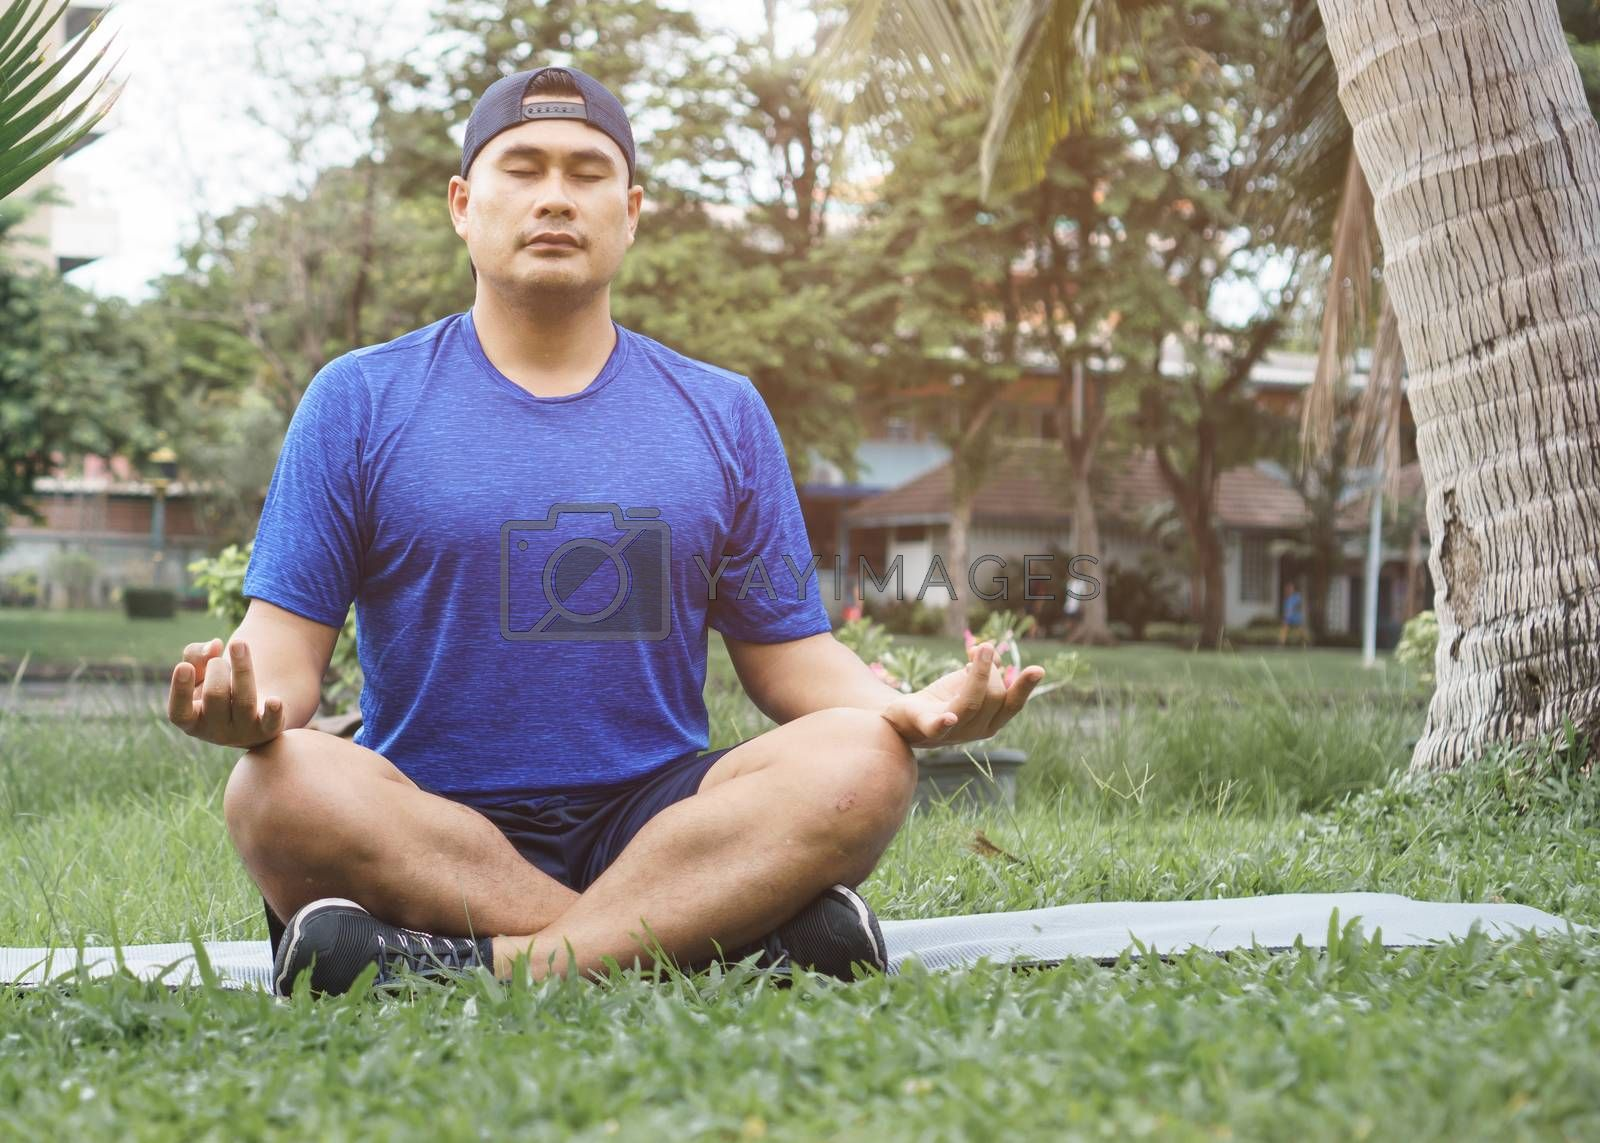 Sportsman meditate on the grass in the park. Young Asian men are healthy and fit to wear sportswear. Sit and relax with yoga  After exercise. fitness and sport  athletic body, balanced life, concept